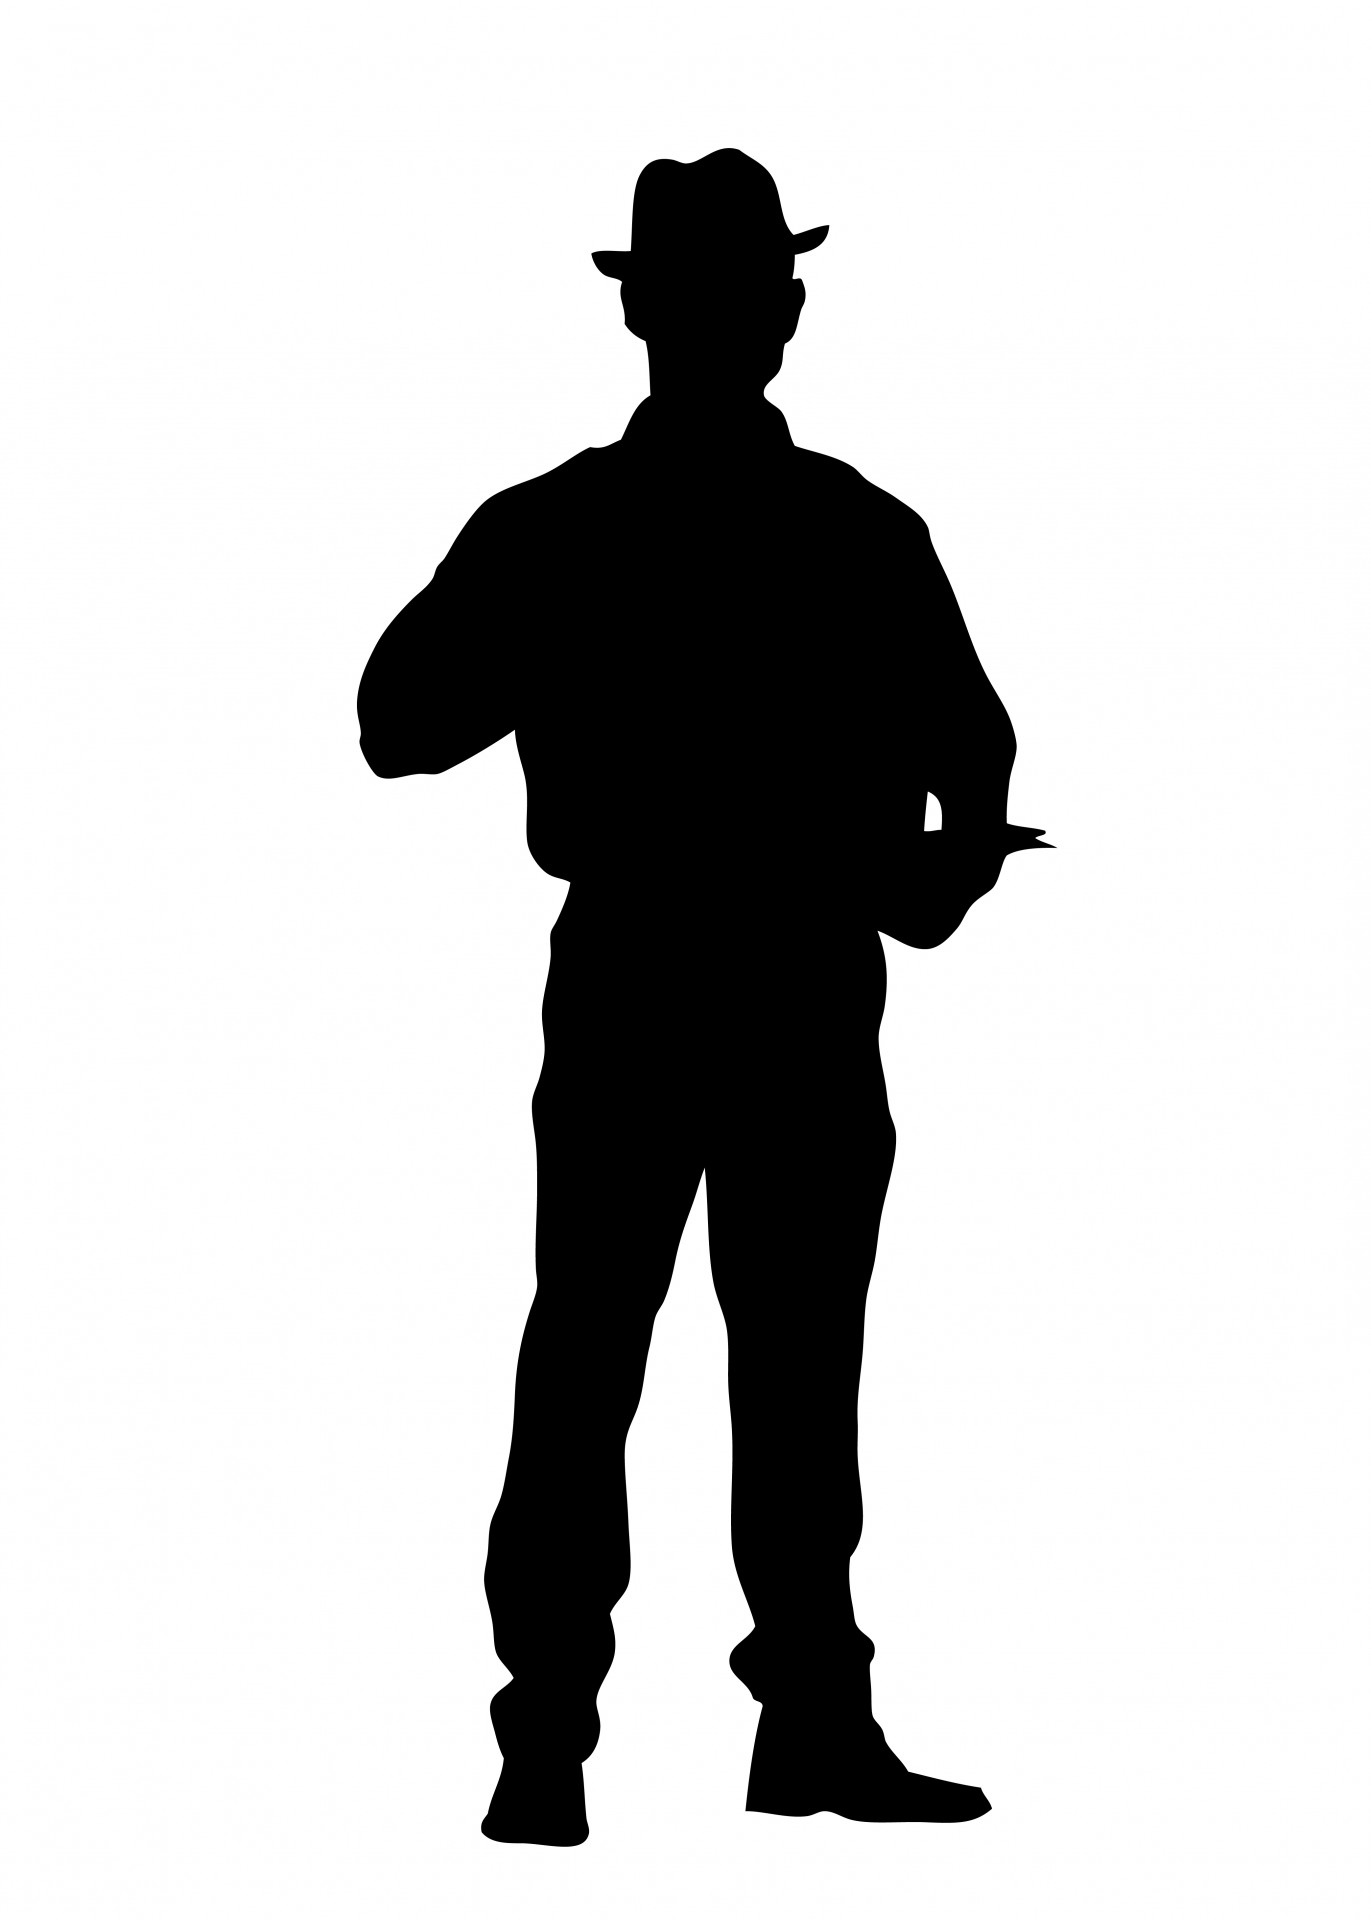 1371x1920 Man Standing Silhouette Free Stock Photo